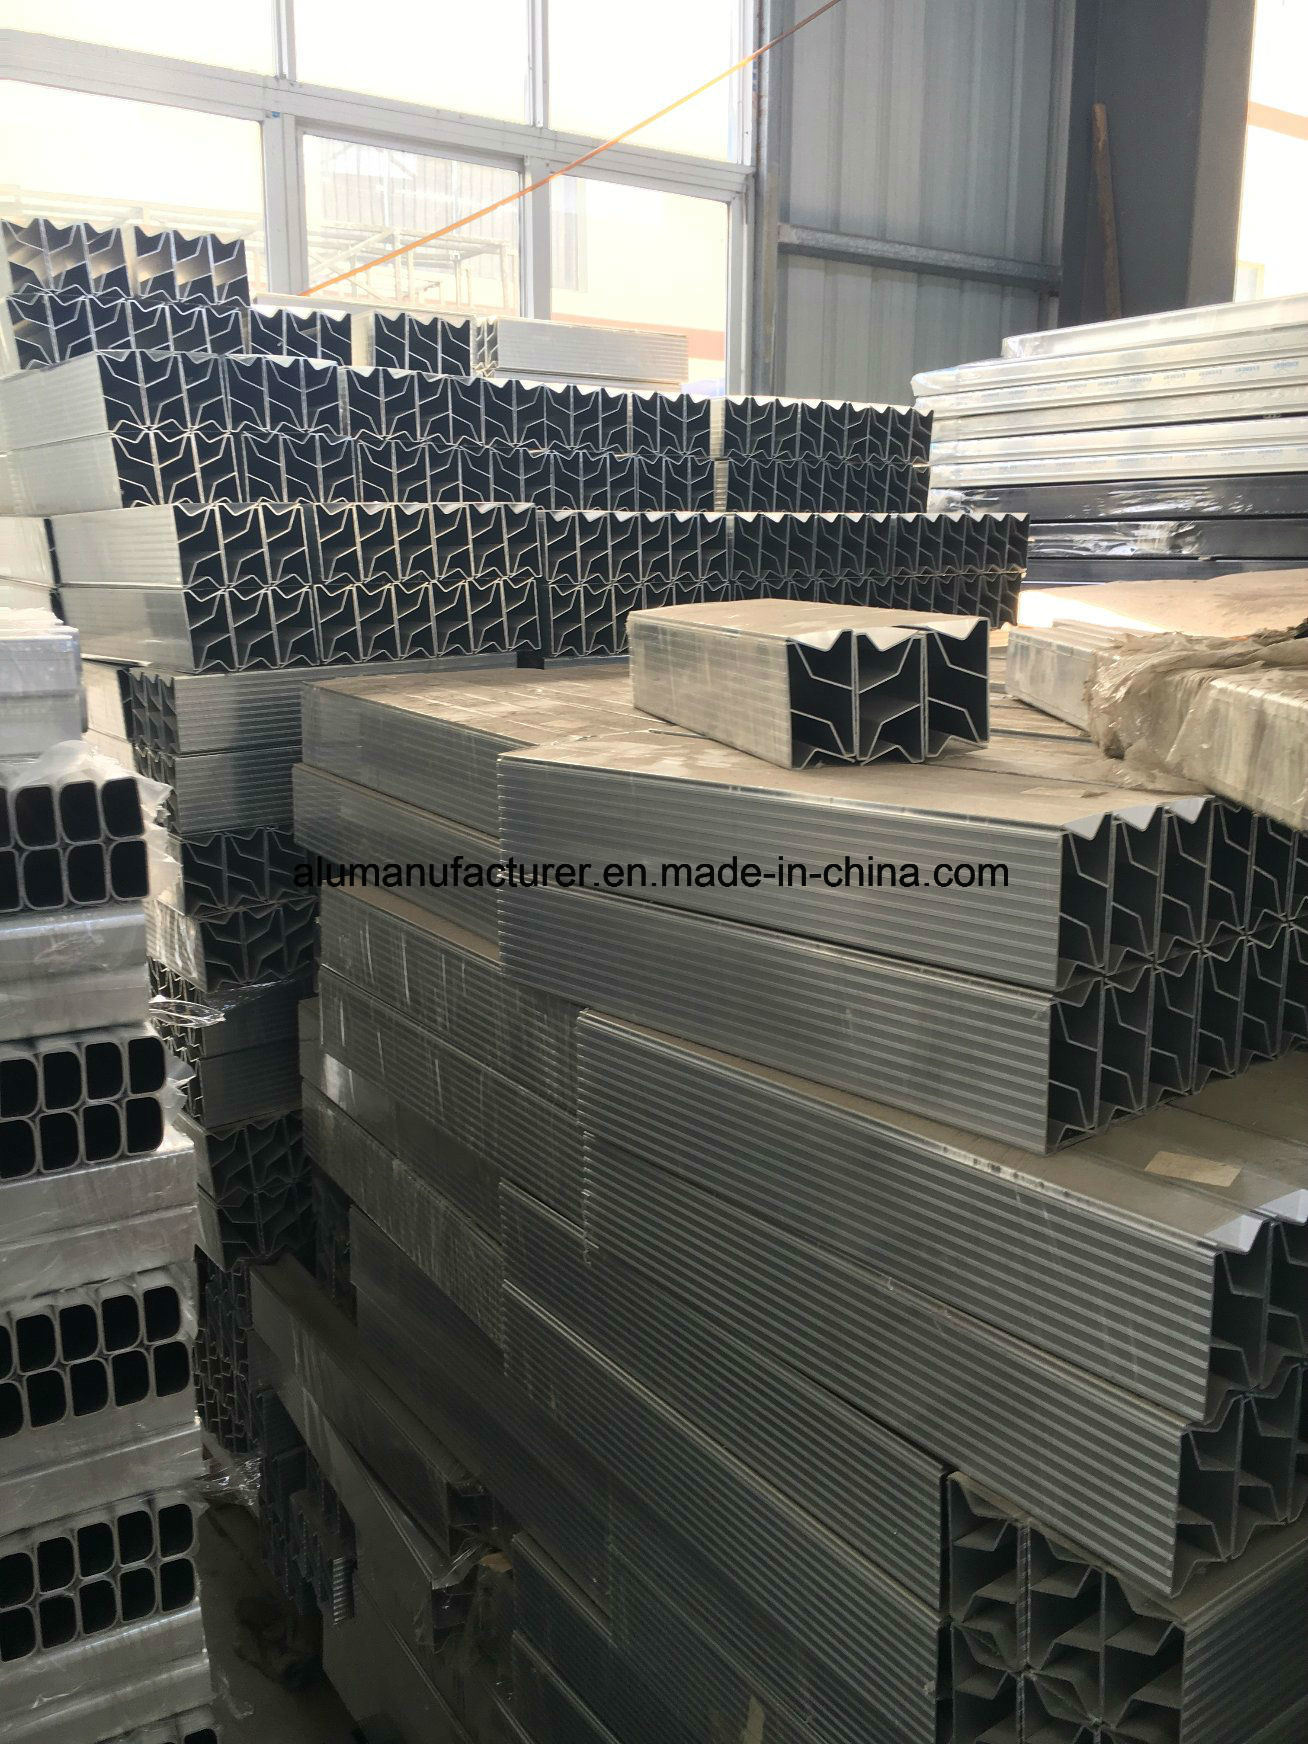 American Ladder Aluminium Alloy Extrusion Profile for Door and Window (02 Series) pictures & photos